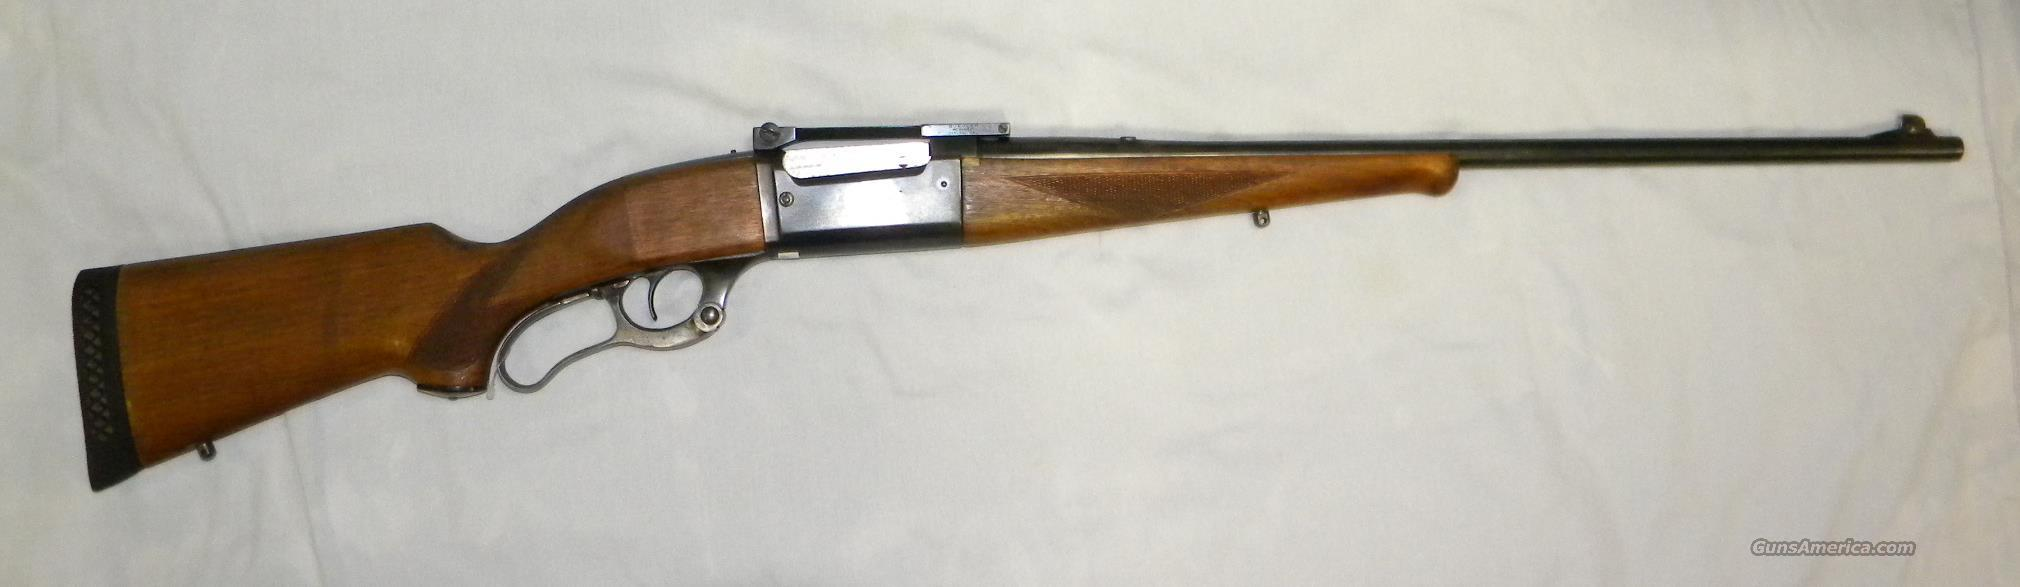 Savage, Model 99, .300 Savage   Guns > Rifles > Savage Rifles > Model 95/99 Family